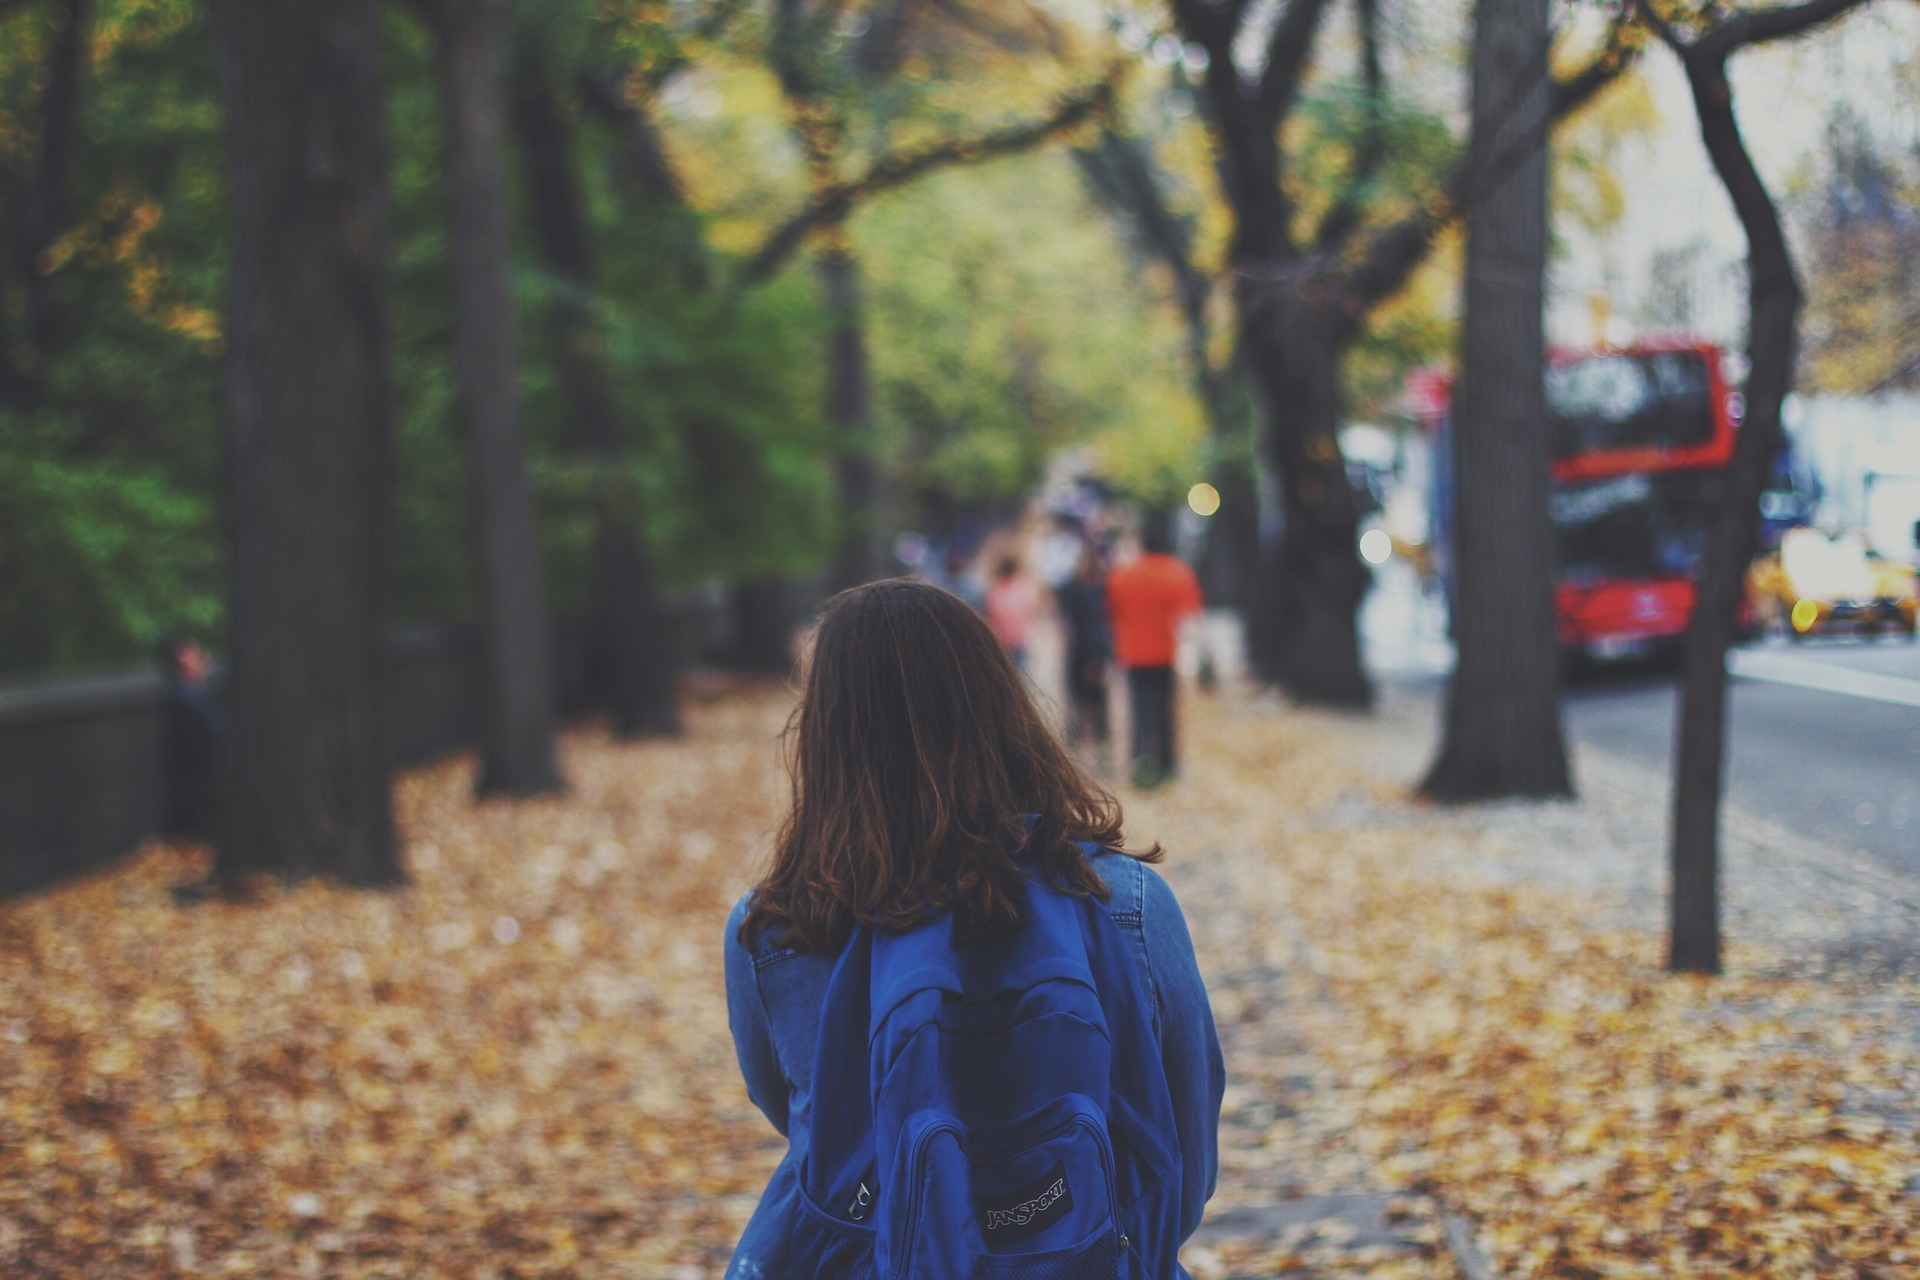 After School—Keys to a Happy Transition Each Day